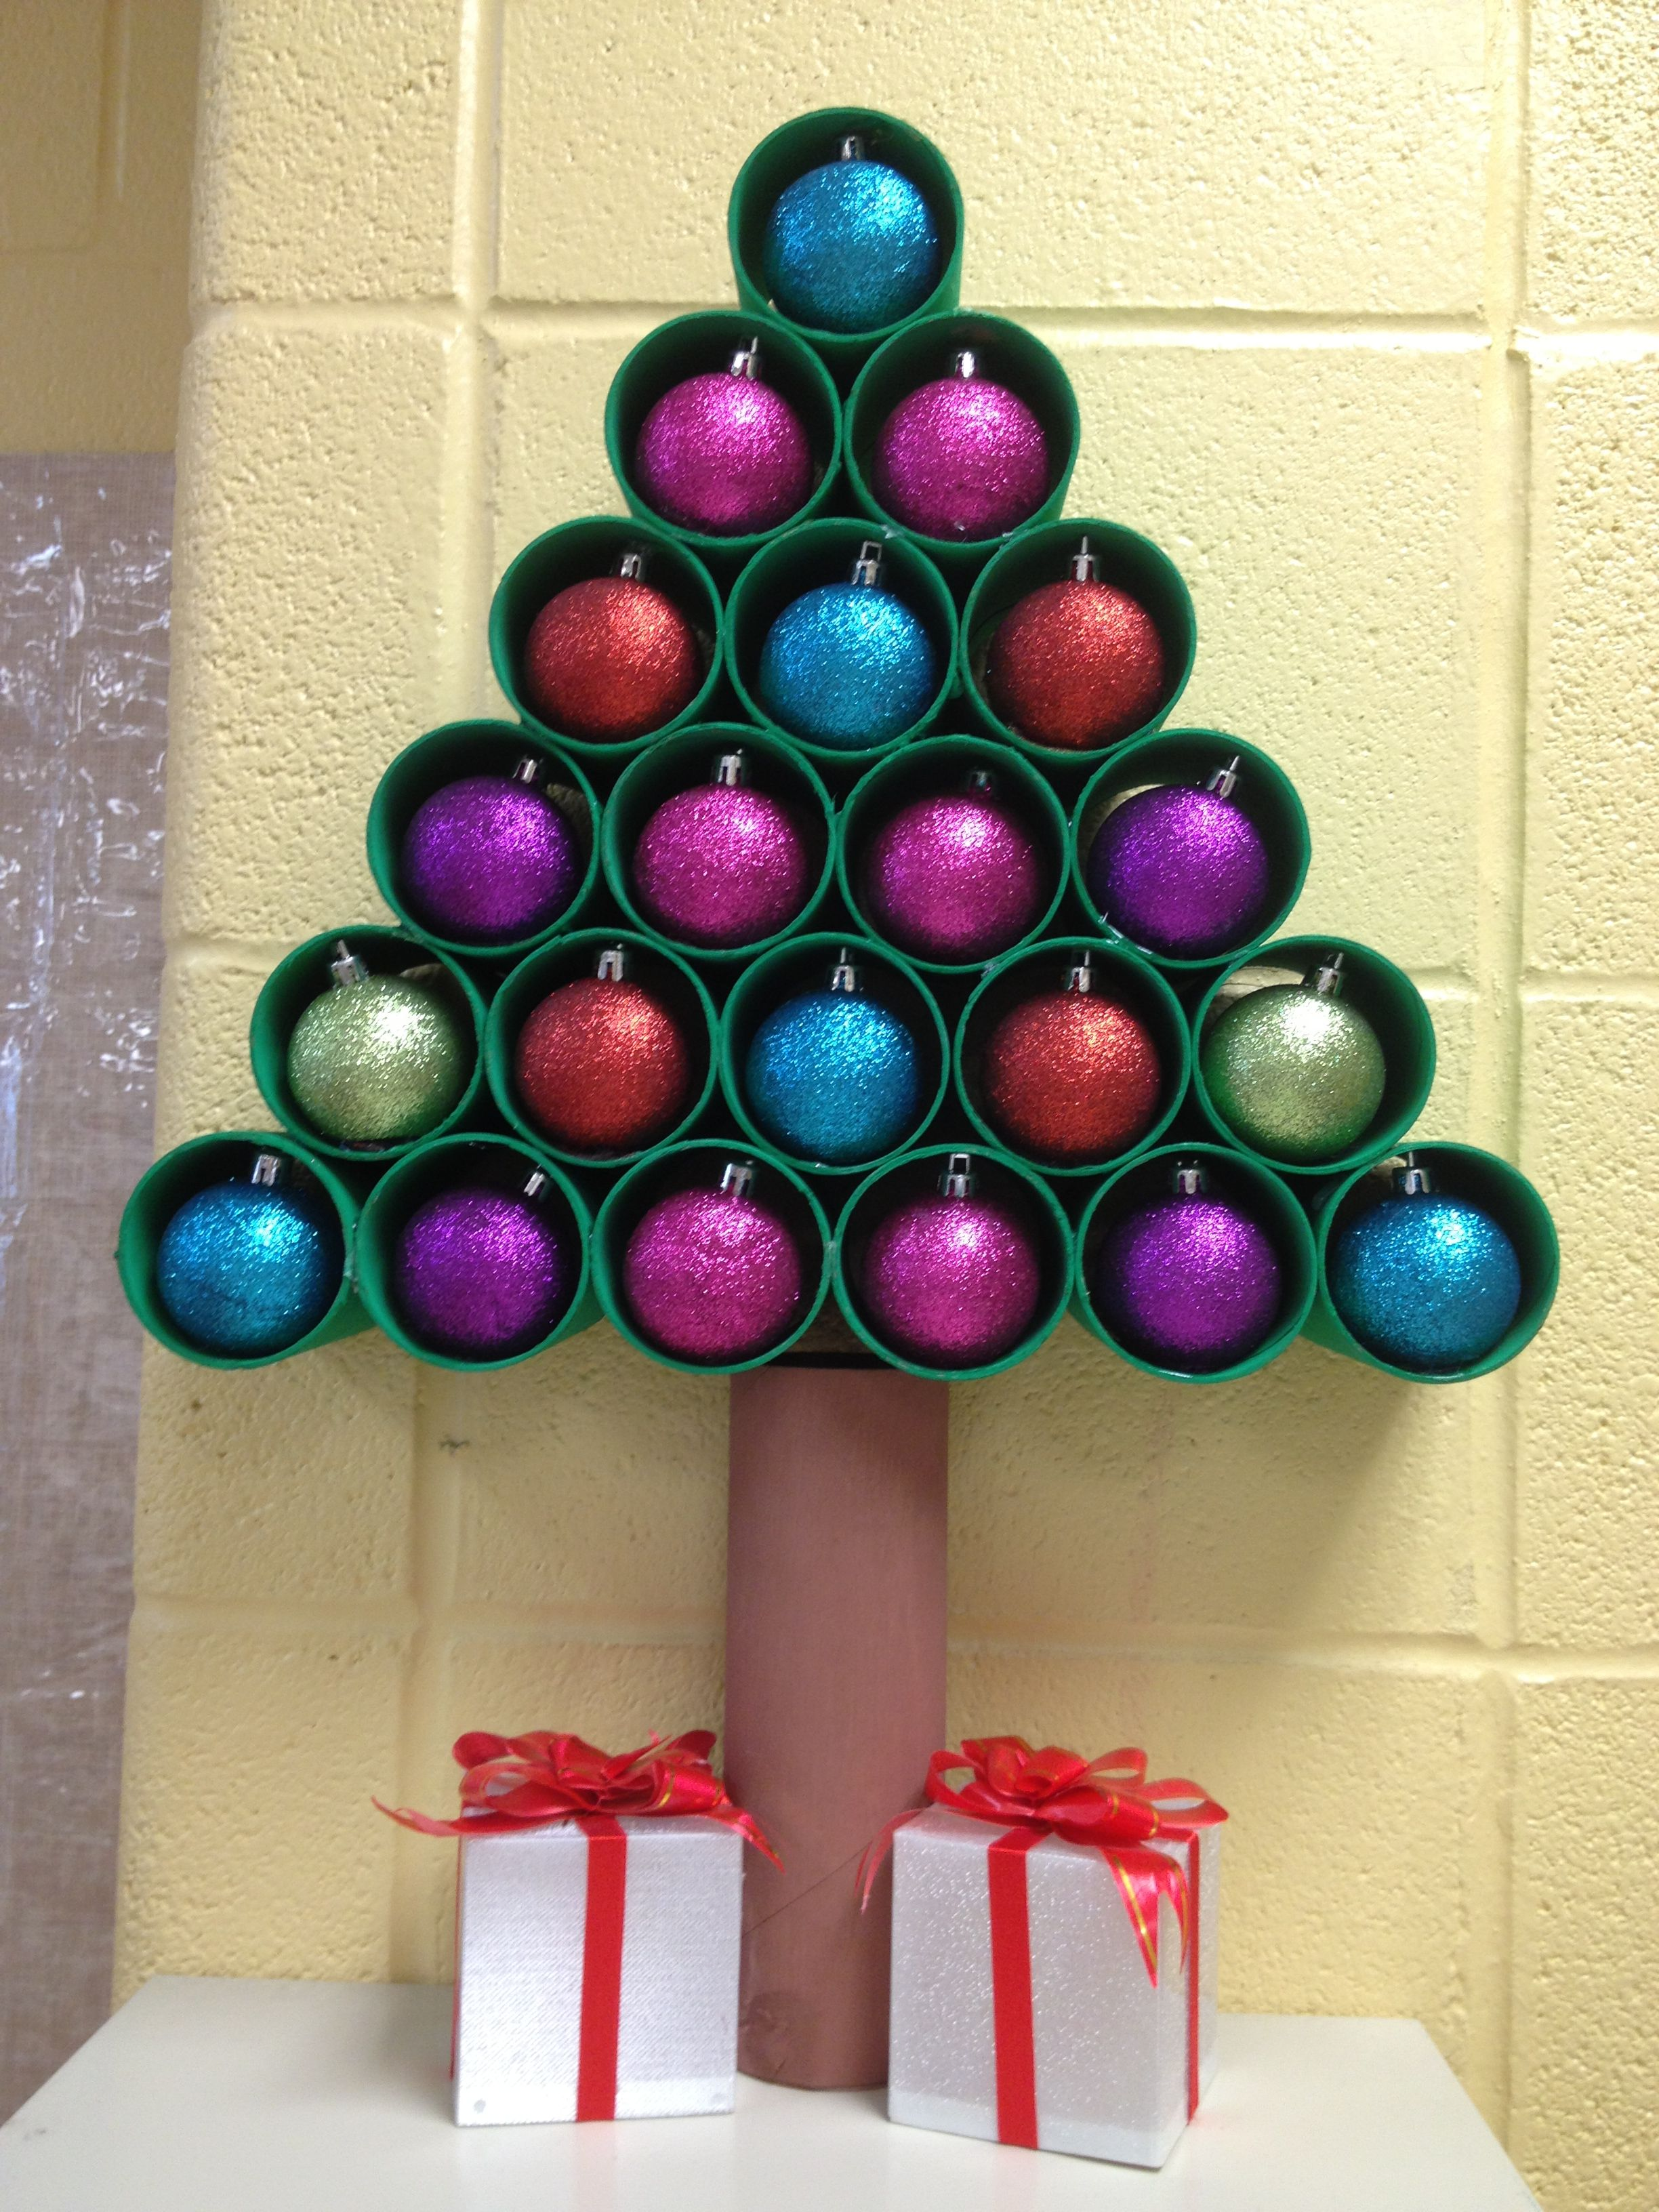 Christmas Tree Made With Toilet Paper Rolls Painted With Tempera Added Orna Unusual Christmas Decorations Christmas Crafts Decorations Christmas Toilet Paper